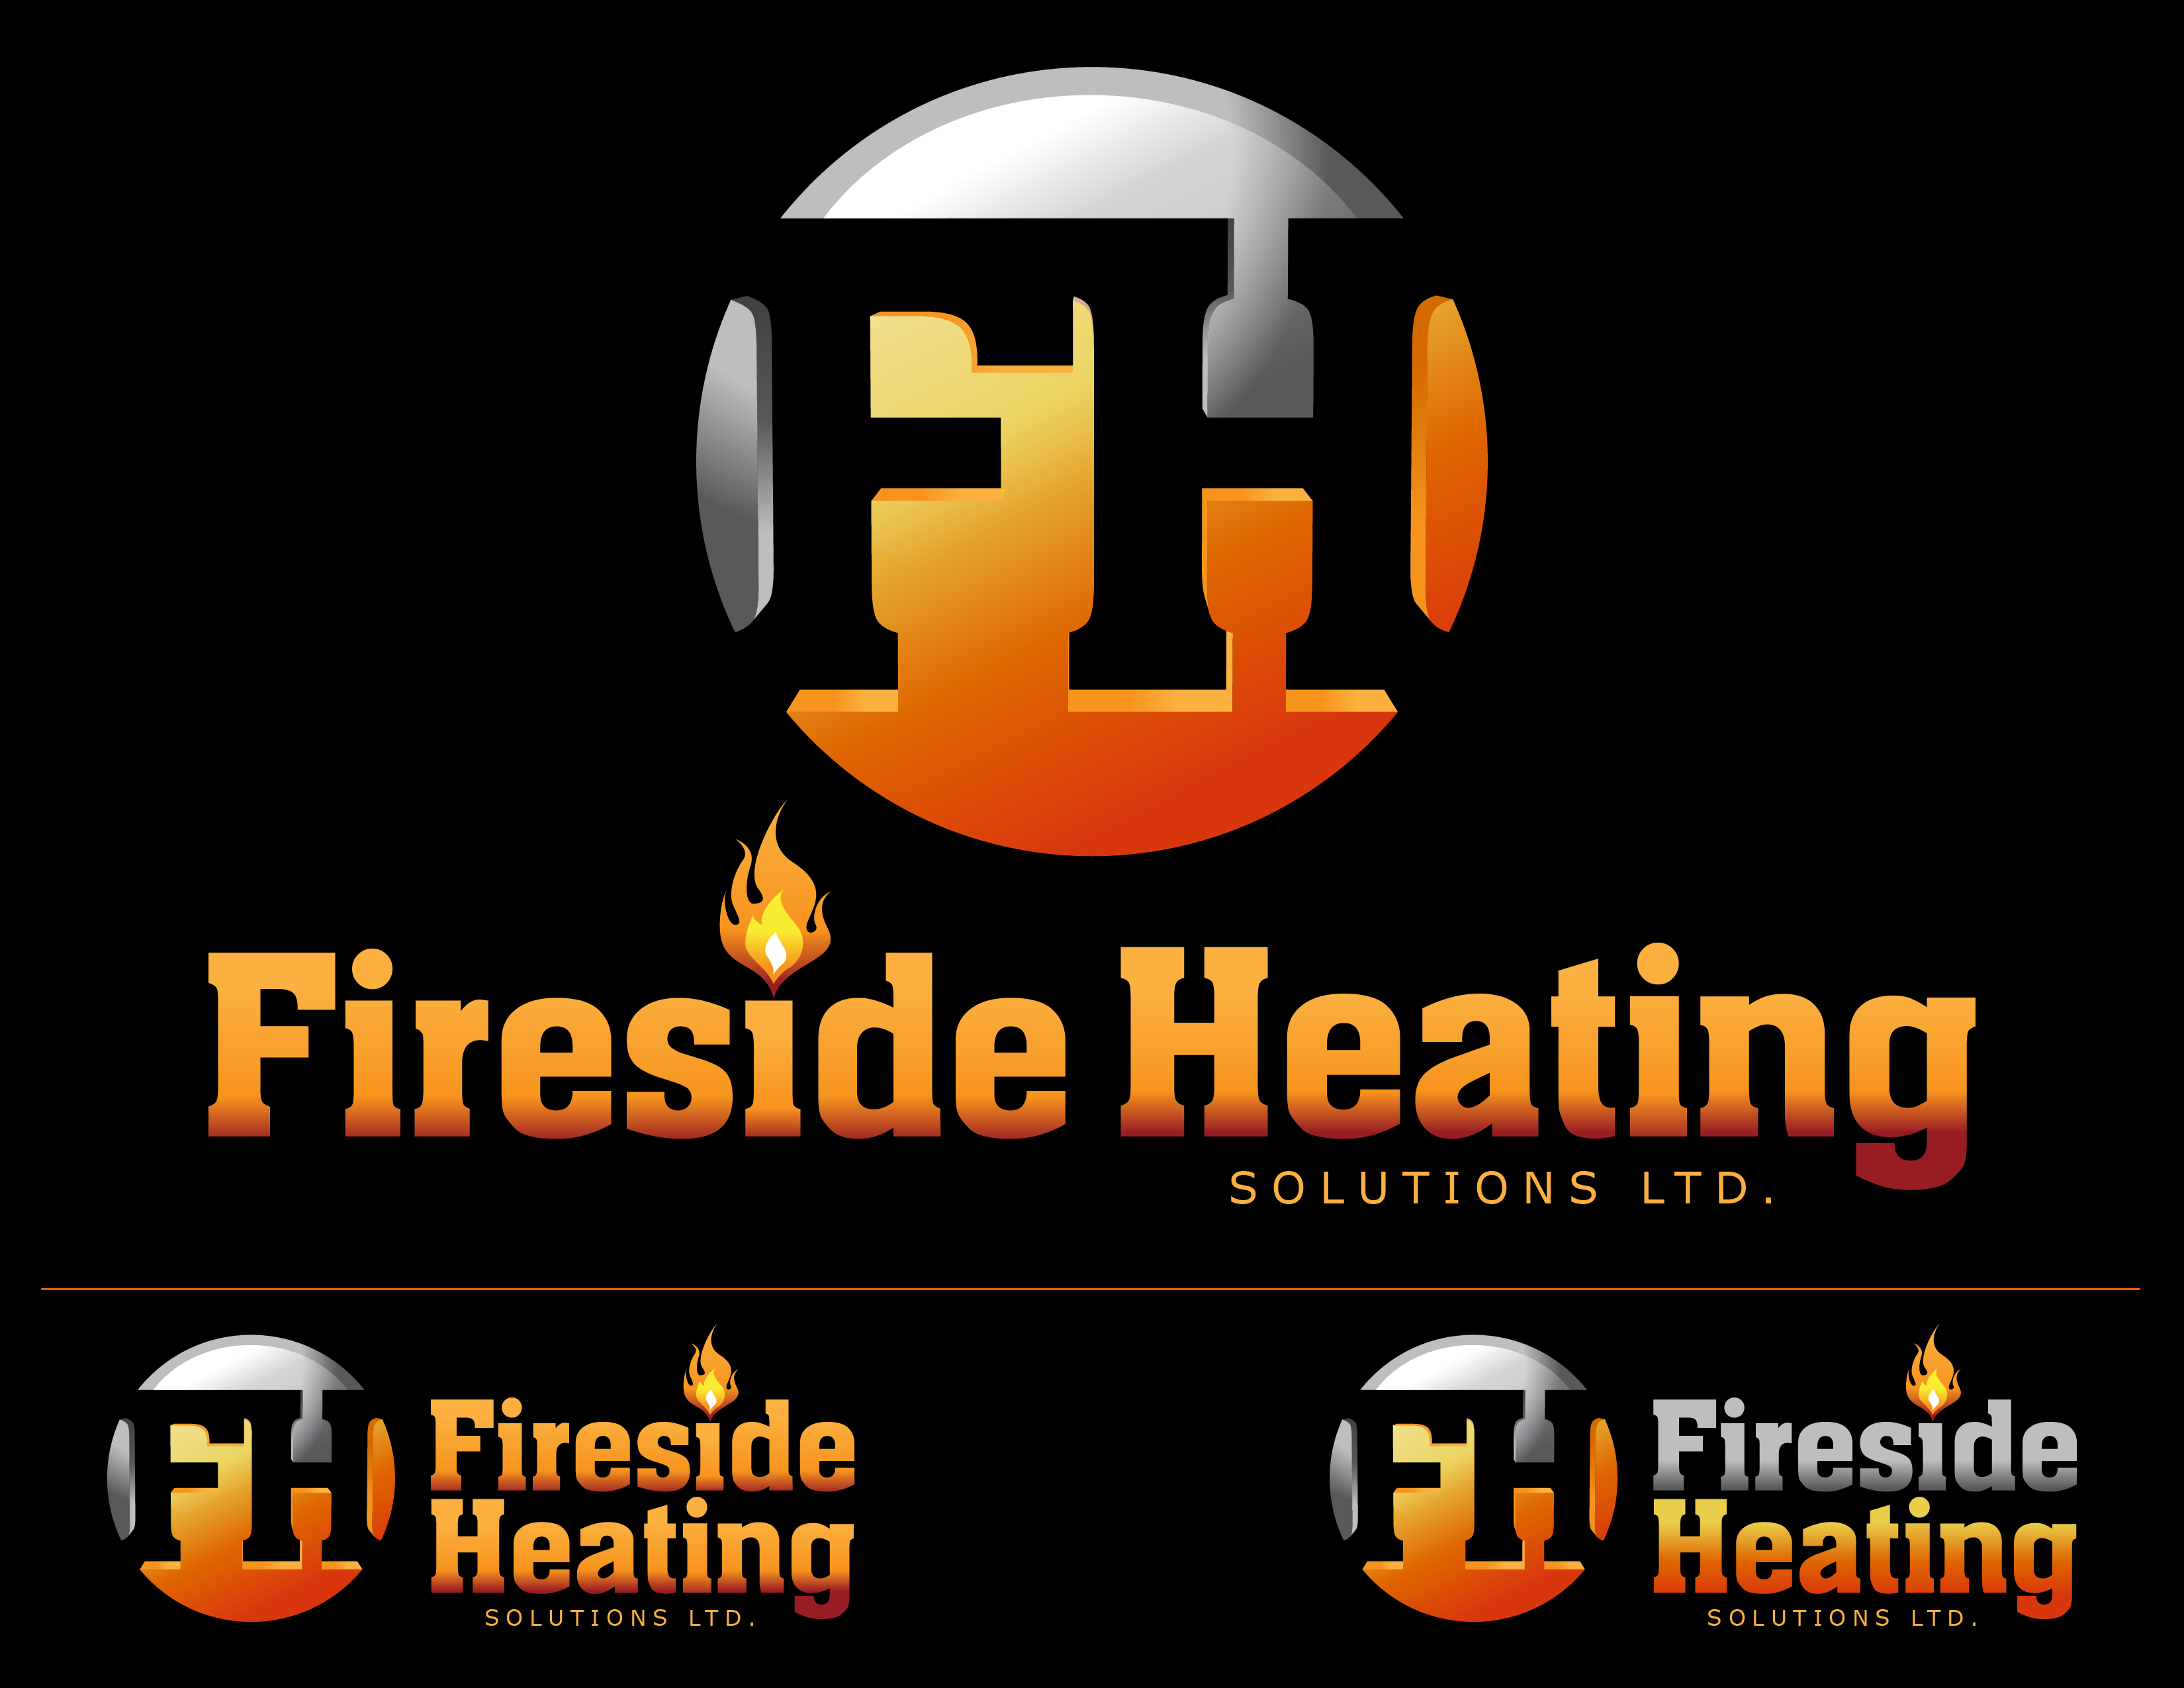 Logo Design by Andrew Velasco - Entry No. 92 in the Logo Design Contest Creative Logo Design for Fireside Heating Solutions Ltd..